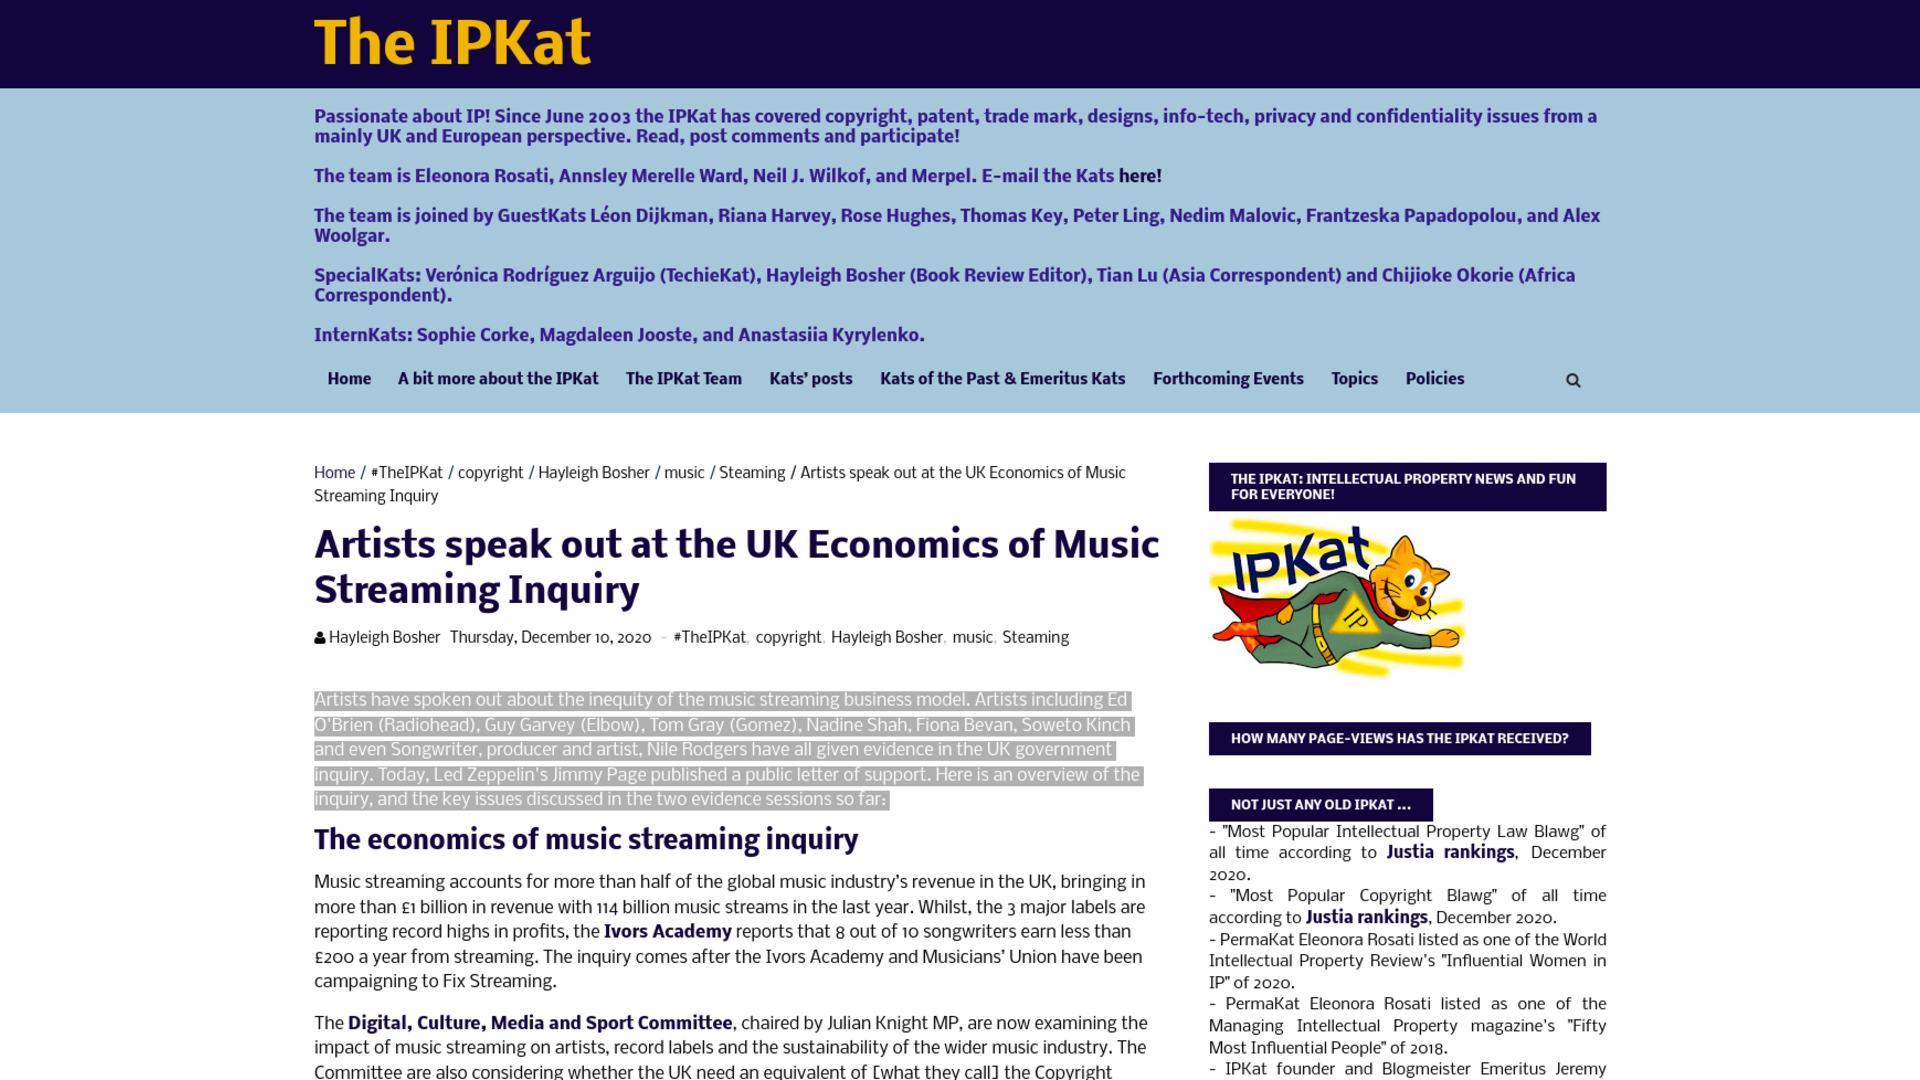 Fairness Rocks News Artists speak out at the UK Economics of Music Streaming Inquiry